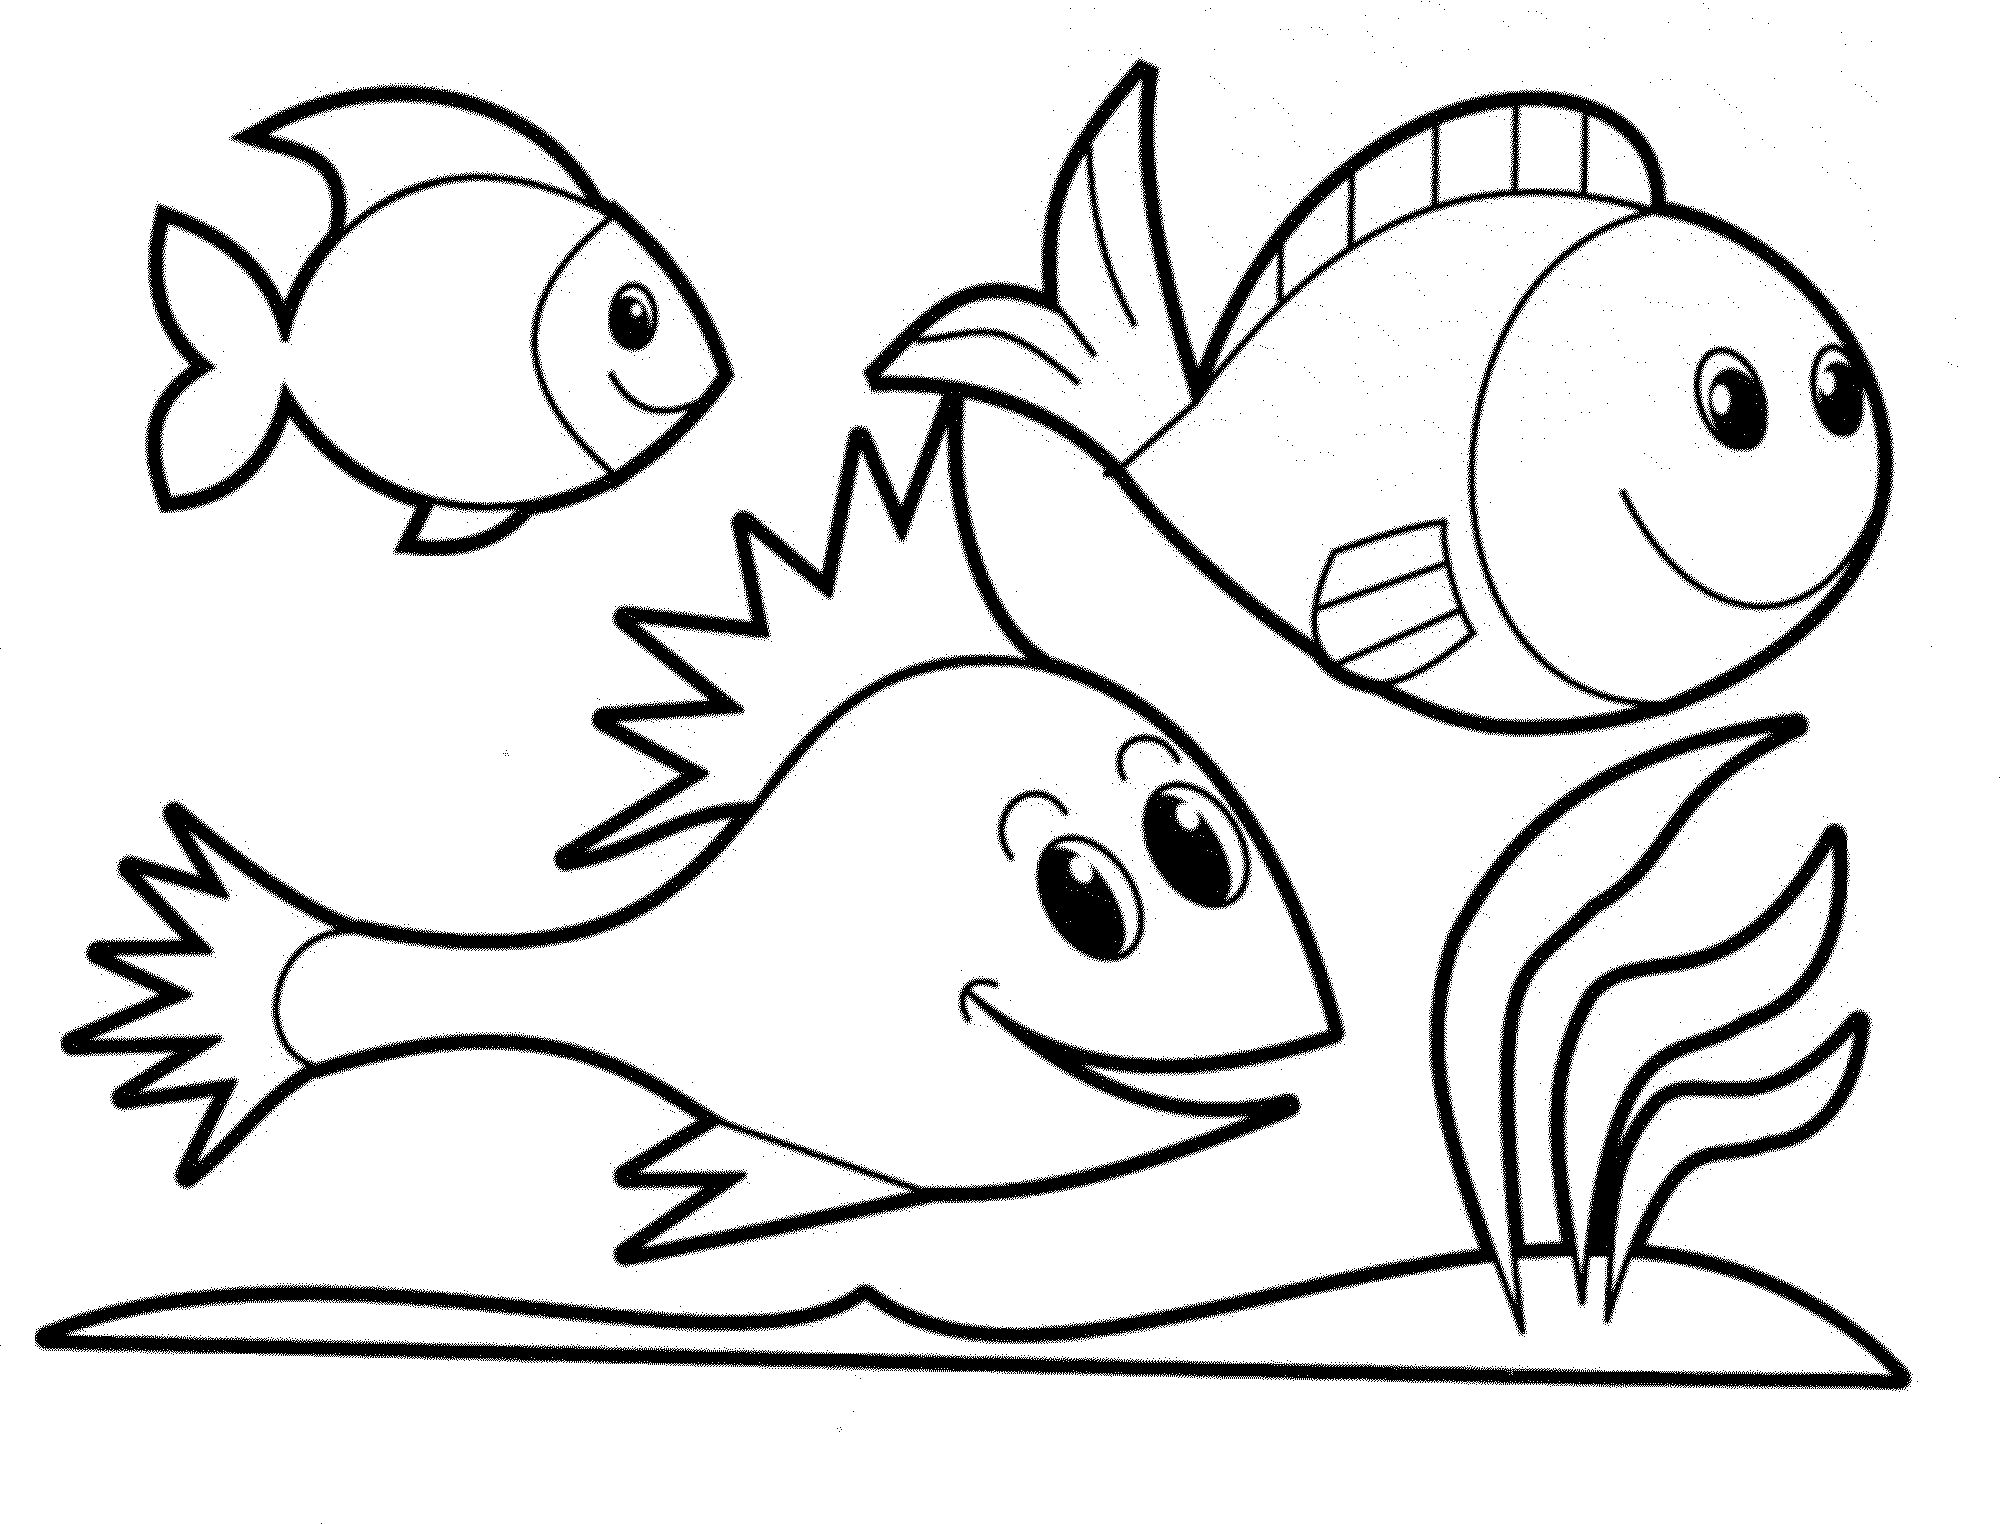 Coloring Fish Free Printable Fish Coloring Pages For Kids - Free Printable Fish Coloring Pages